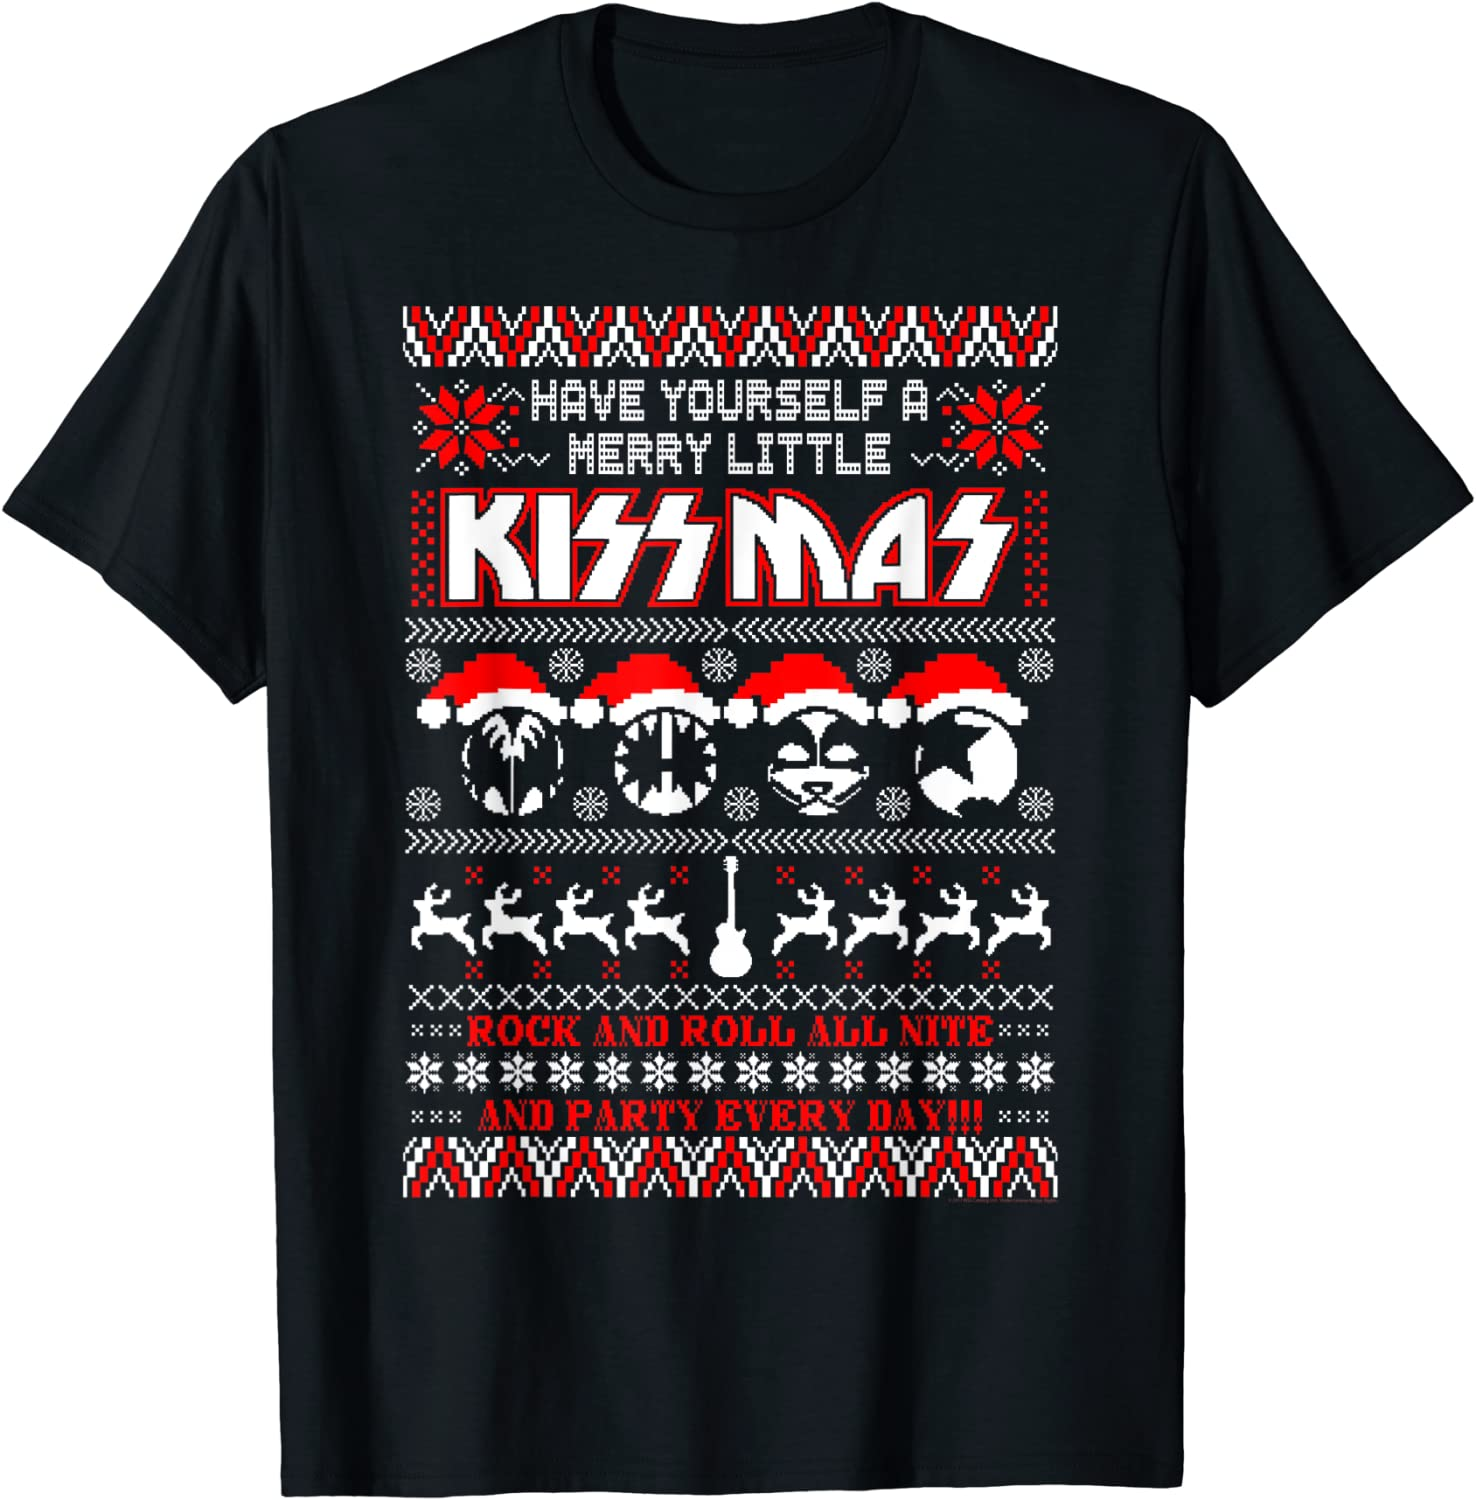 KISS - Merry Special price for a limited time KISSmas T-Shirt Little Choice